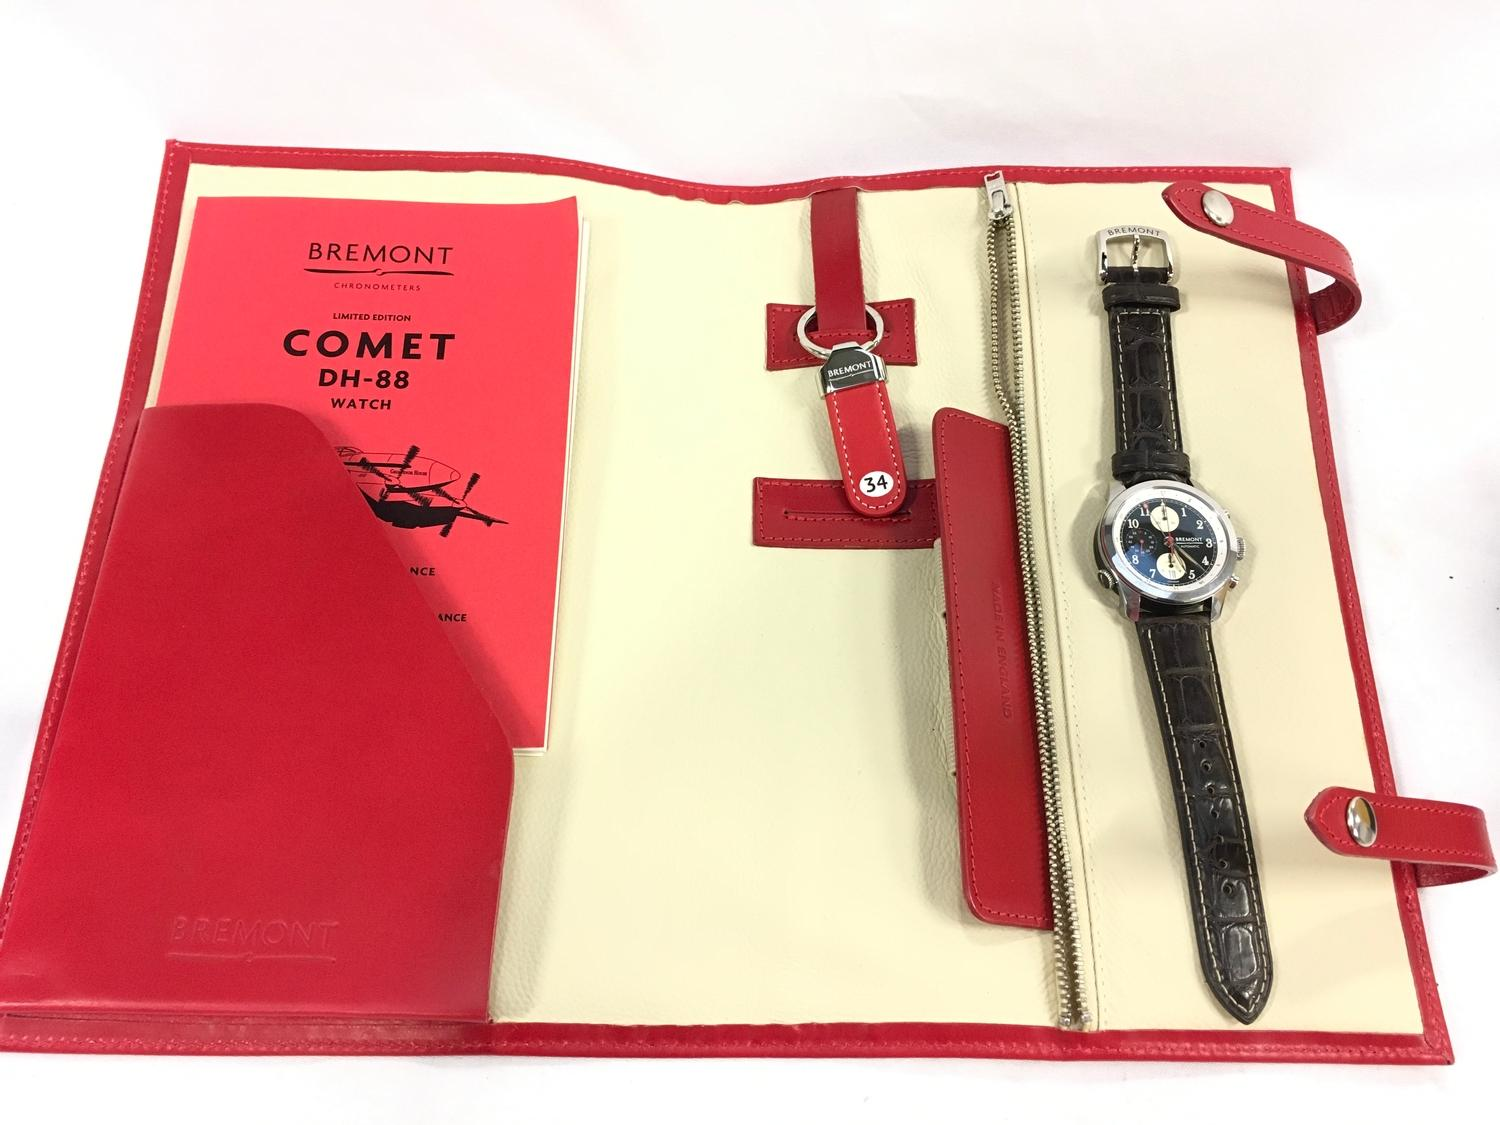 Bremont Stainless Steel gents watch, DH-88 Comet Limited Edition. - Image 2 of 11